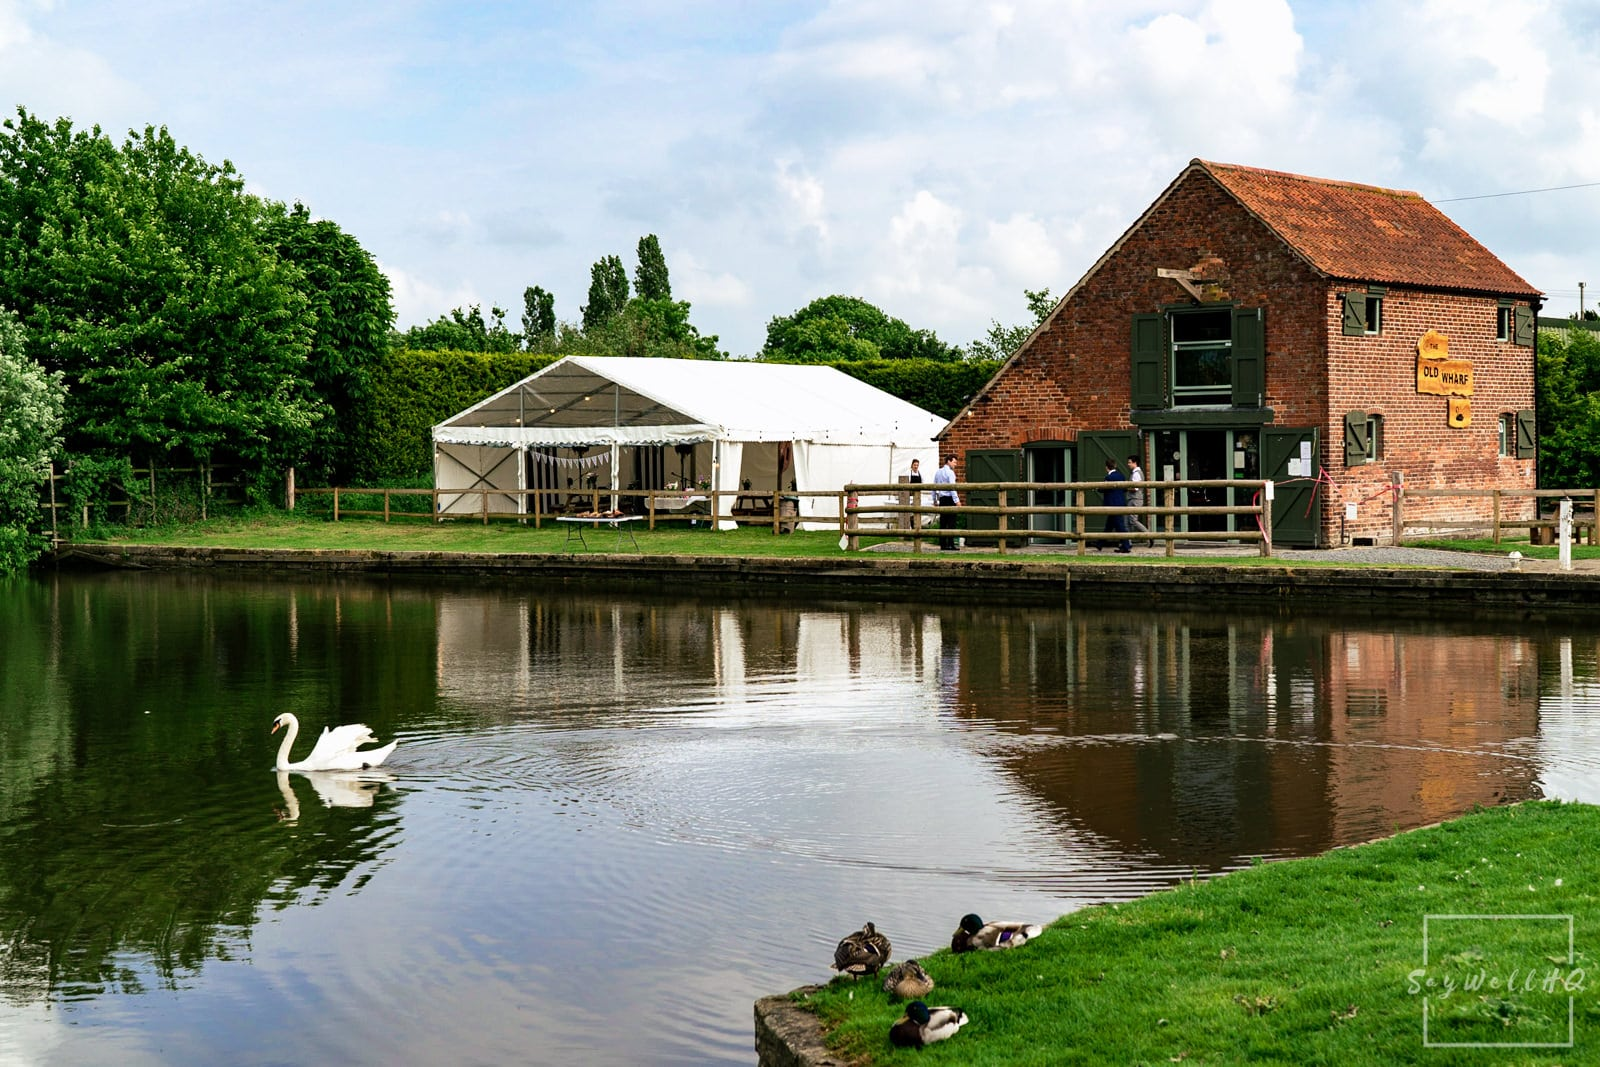 Leicester Wedding Photography + Leicester Wedding Photographer + Humanist Wedding Photographer + Old Wharf Tea Rooms wedding venue pictures